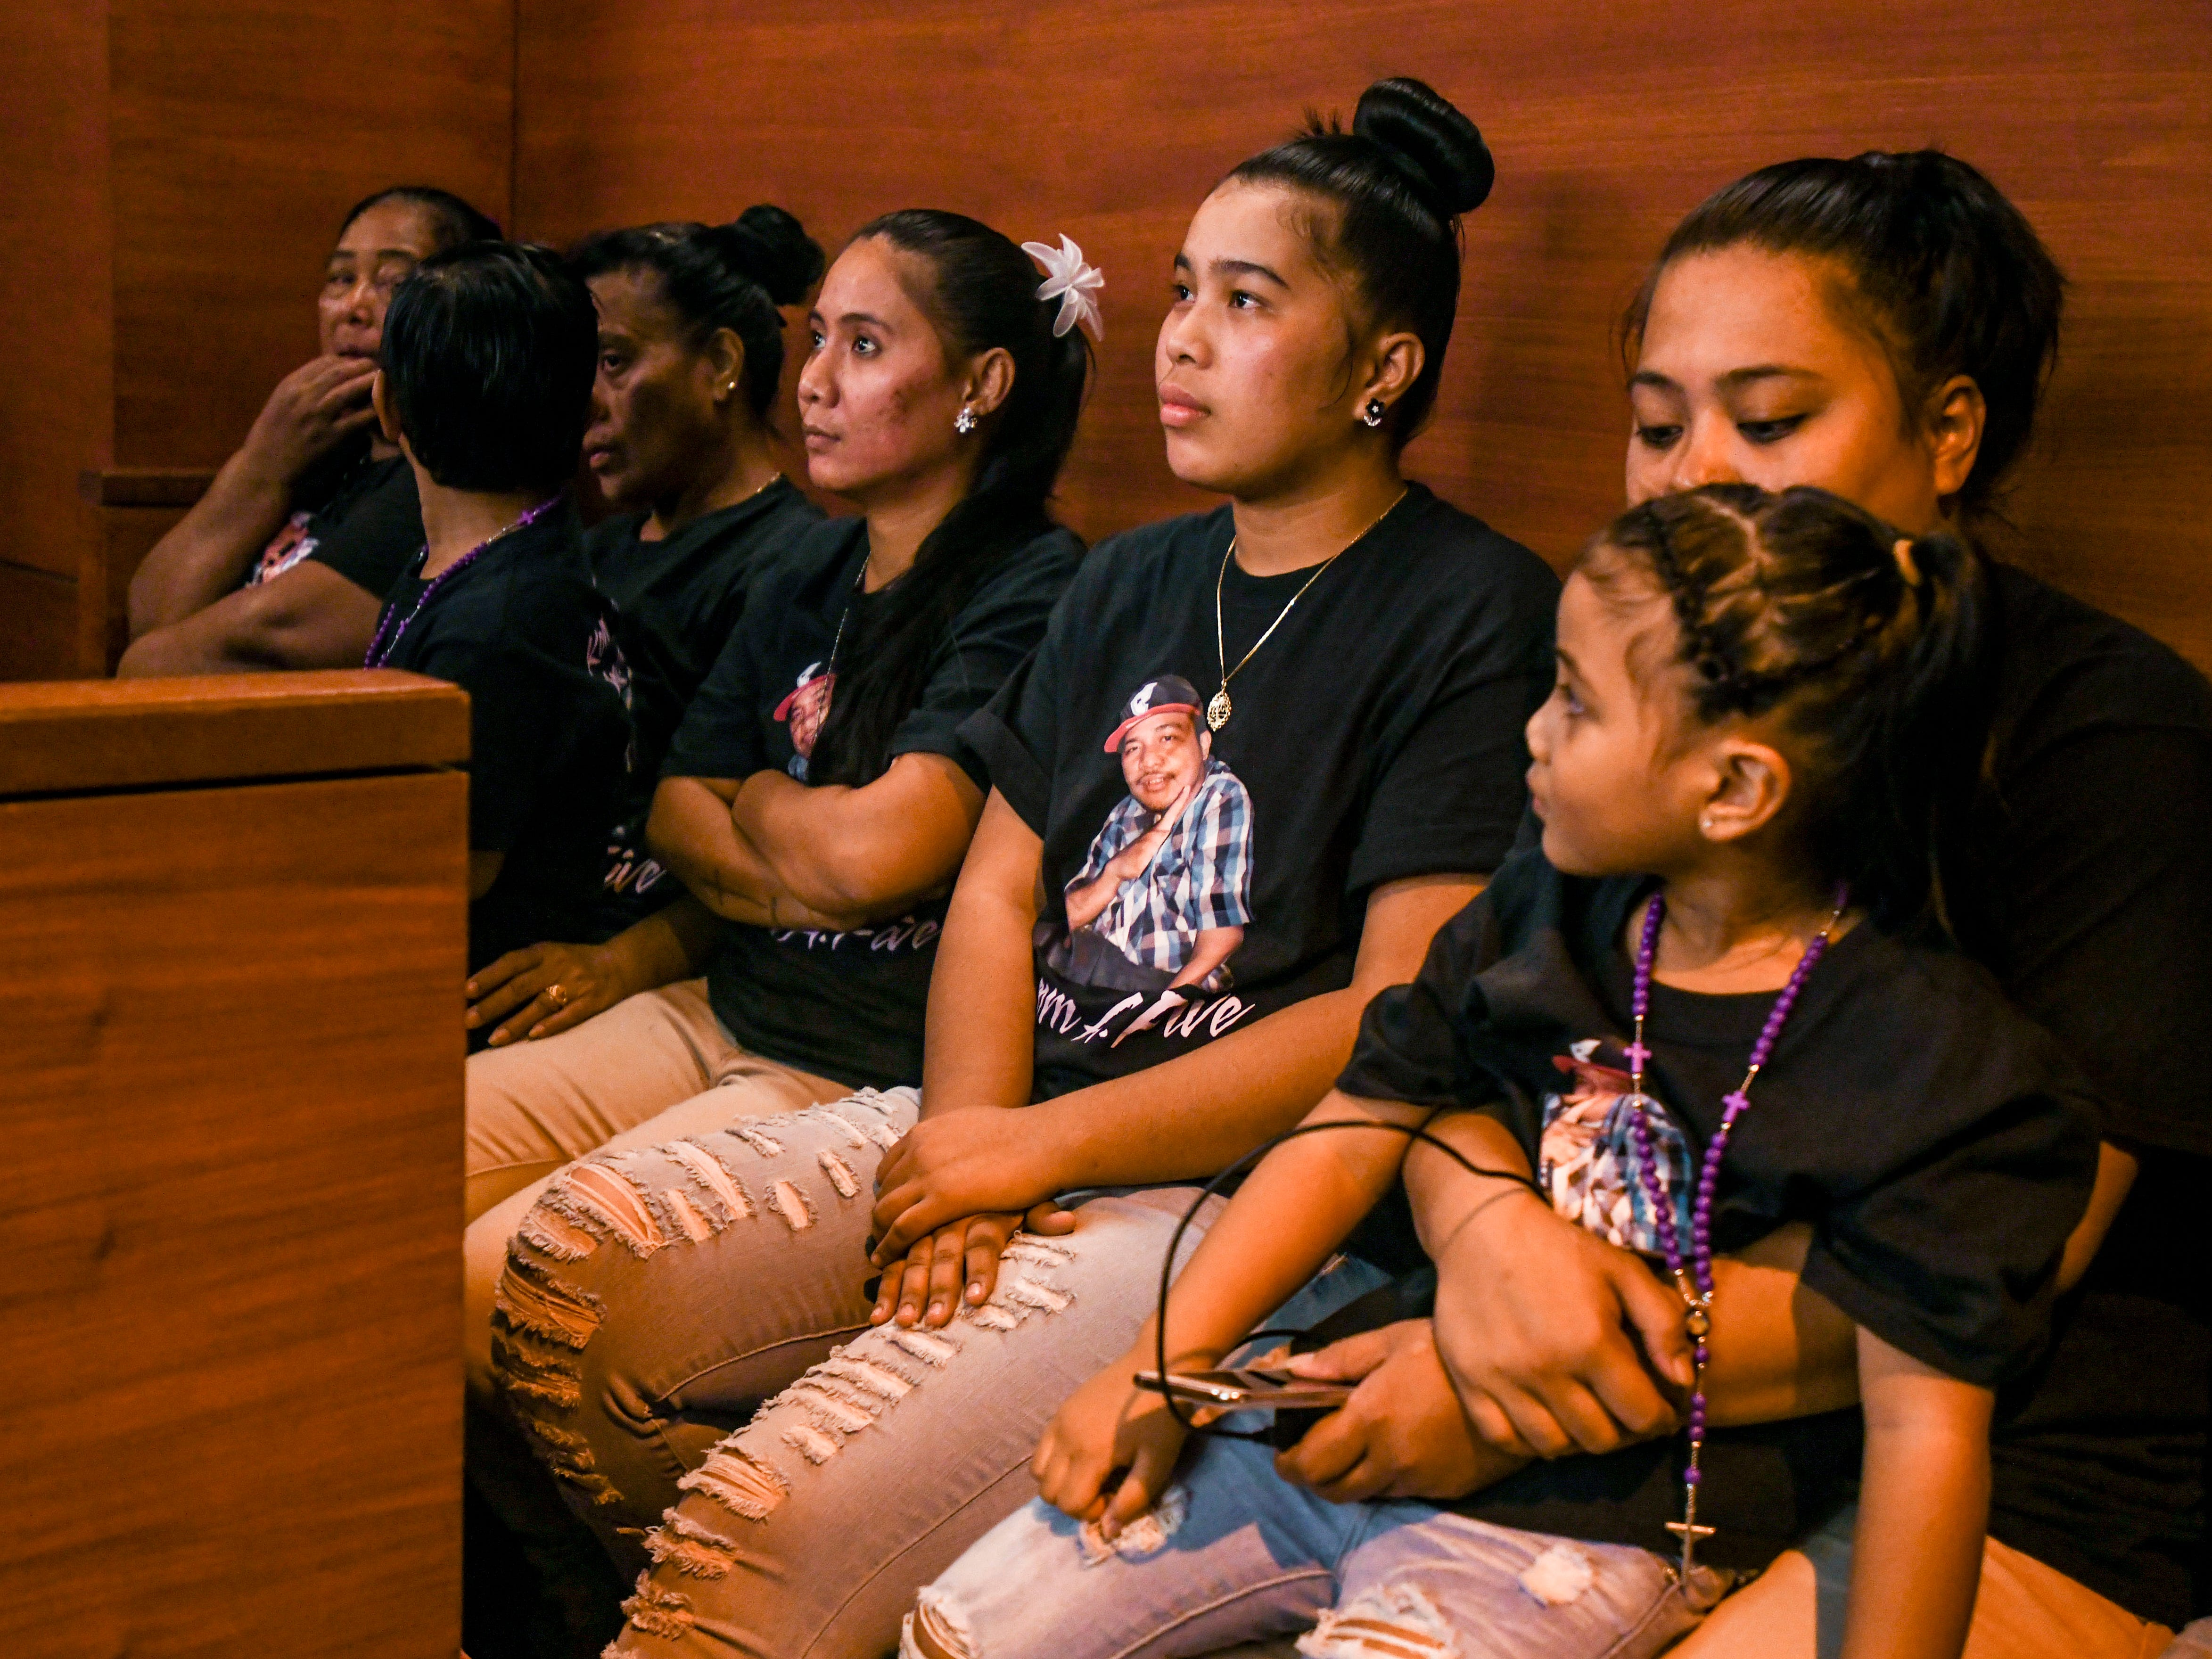 Myrose Mwarecheong, center, wife of shooting victim AV Mwarecheong, her children, family members and others, attend the change of plead hearing for defeandant, Joseph Sagdal, at the  Superior Court of Guam in Hagågtña on Thursday, Dec. 6, 2018. Sagdal faced charges in the December 2017 shooting deaths of Brokey Thamaso and AV Mwarecheong. During the hearing, Sagdal pleaded guilty to one count of manslaughter for the death of Mwarecheong and was sentenced to 15 years, with six years of his sentence suspended, by Judge Cenzon.